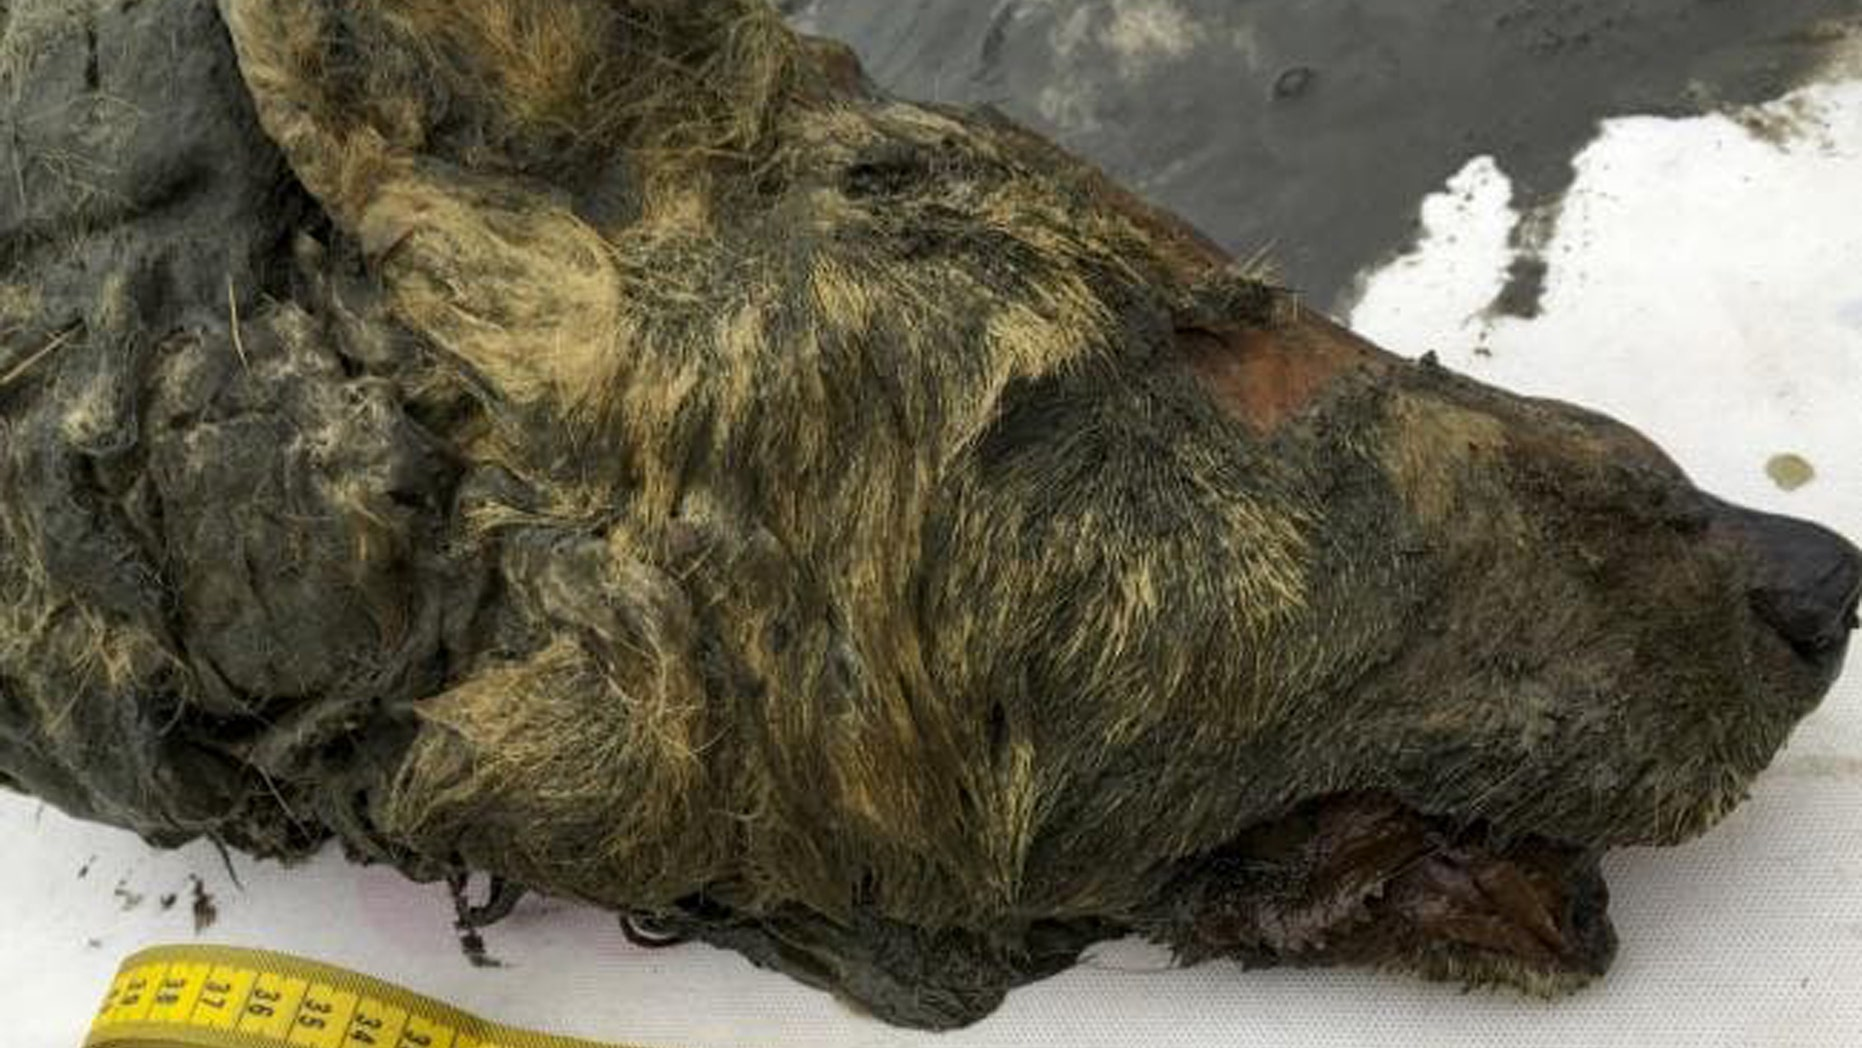 In this Sept. 6, 2018, photo, the head of an Ice Age wolf is seen after it was found during an expedition near Belaya Gora, Abyysky region of Sakha Republic, Russia. (Albert Protopopov/Mammoth Fauna Study Department at the Academy of Sciences of Yakutia via AP)